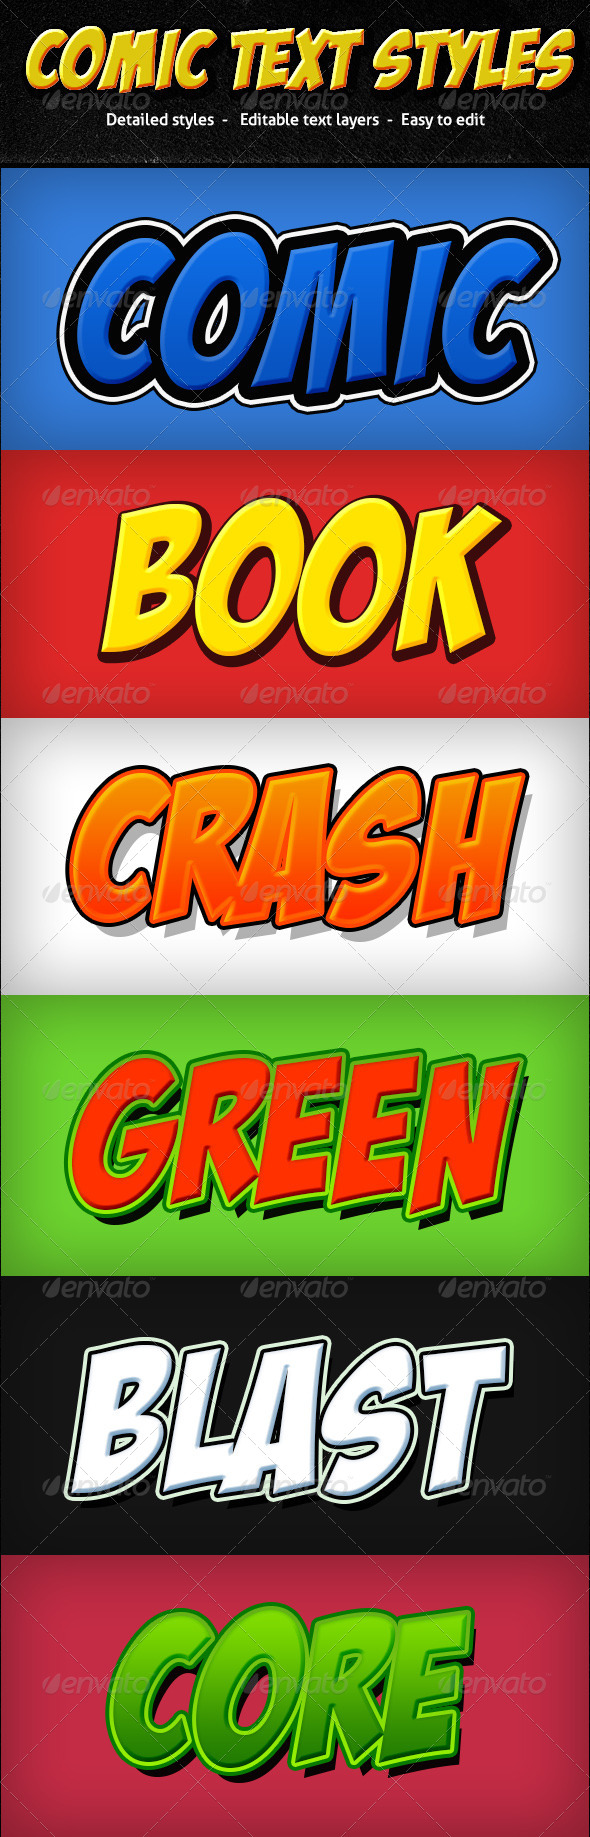 GraphicRiver Comic Text Styles 6946466